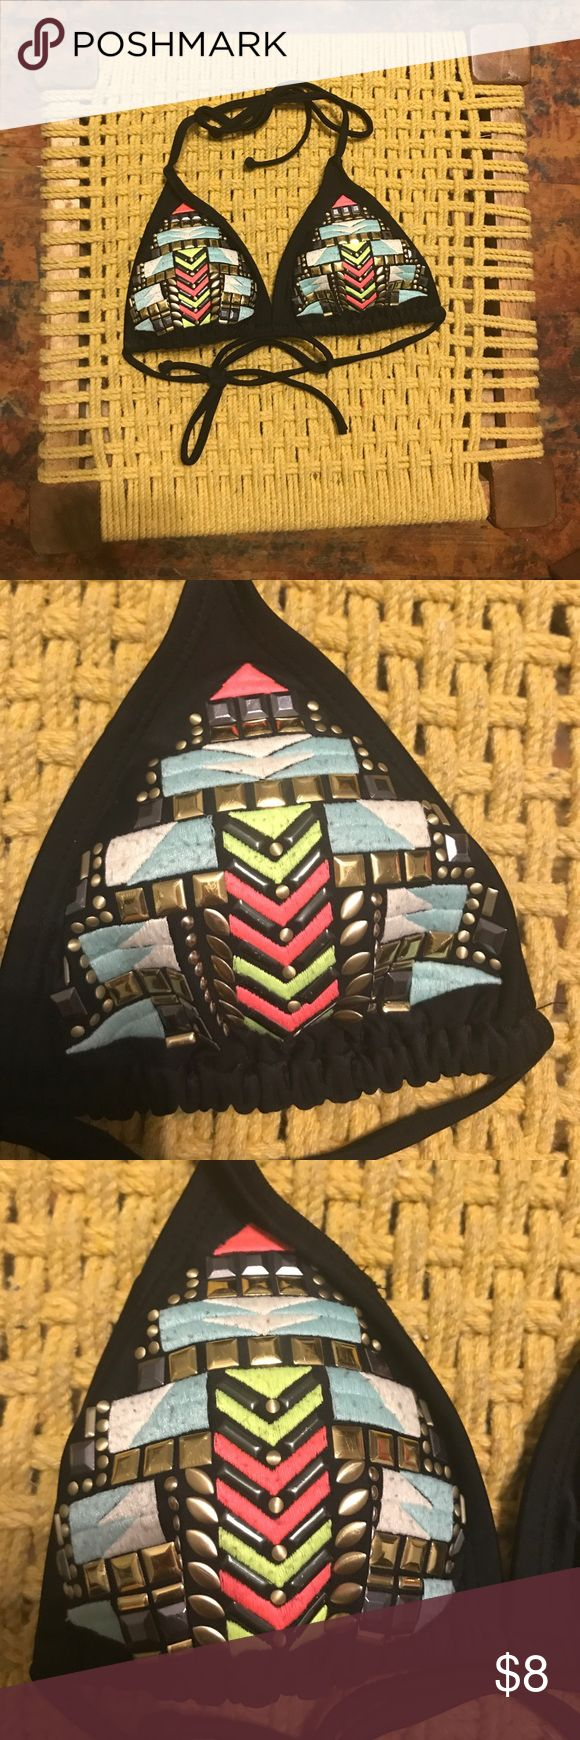 Xhilaration Target Bikini Top Swimsuit Size XS Xhilaration Target Bikini Top Swimsuit Size XS in Great used condition, only worn a few times. Xhilaration Swim Bikinis